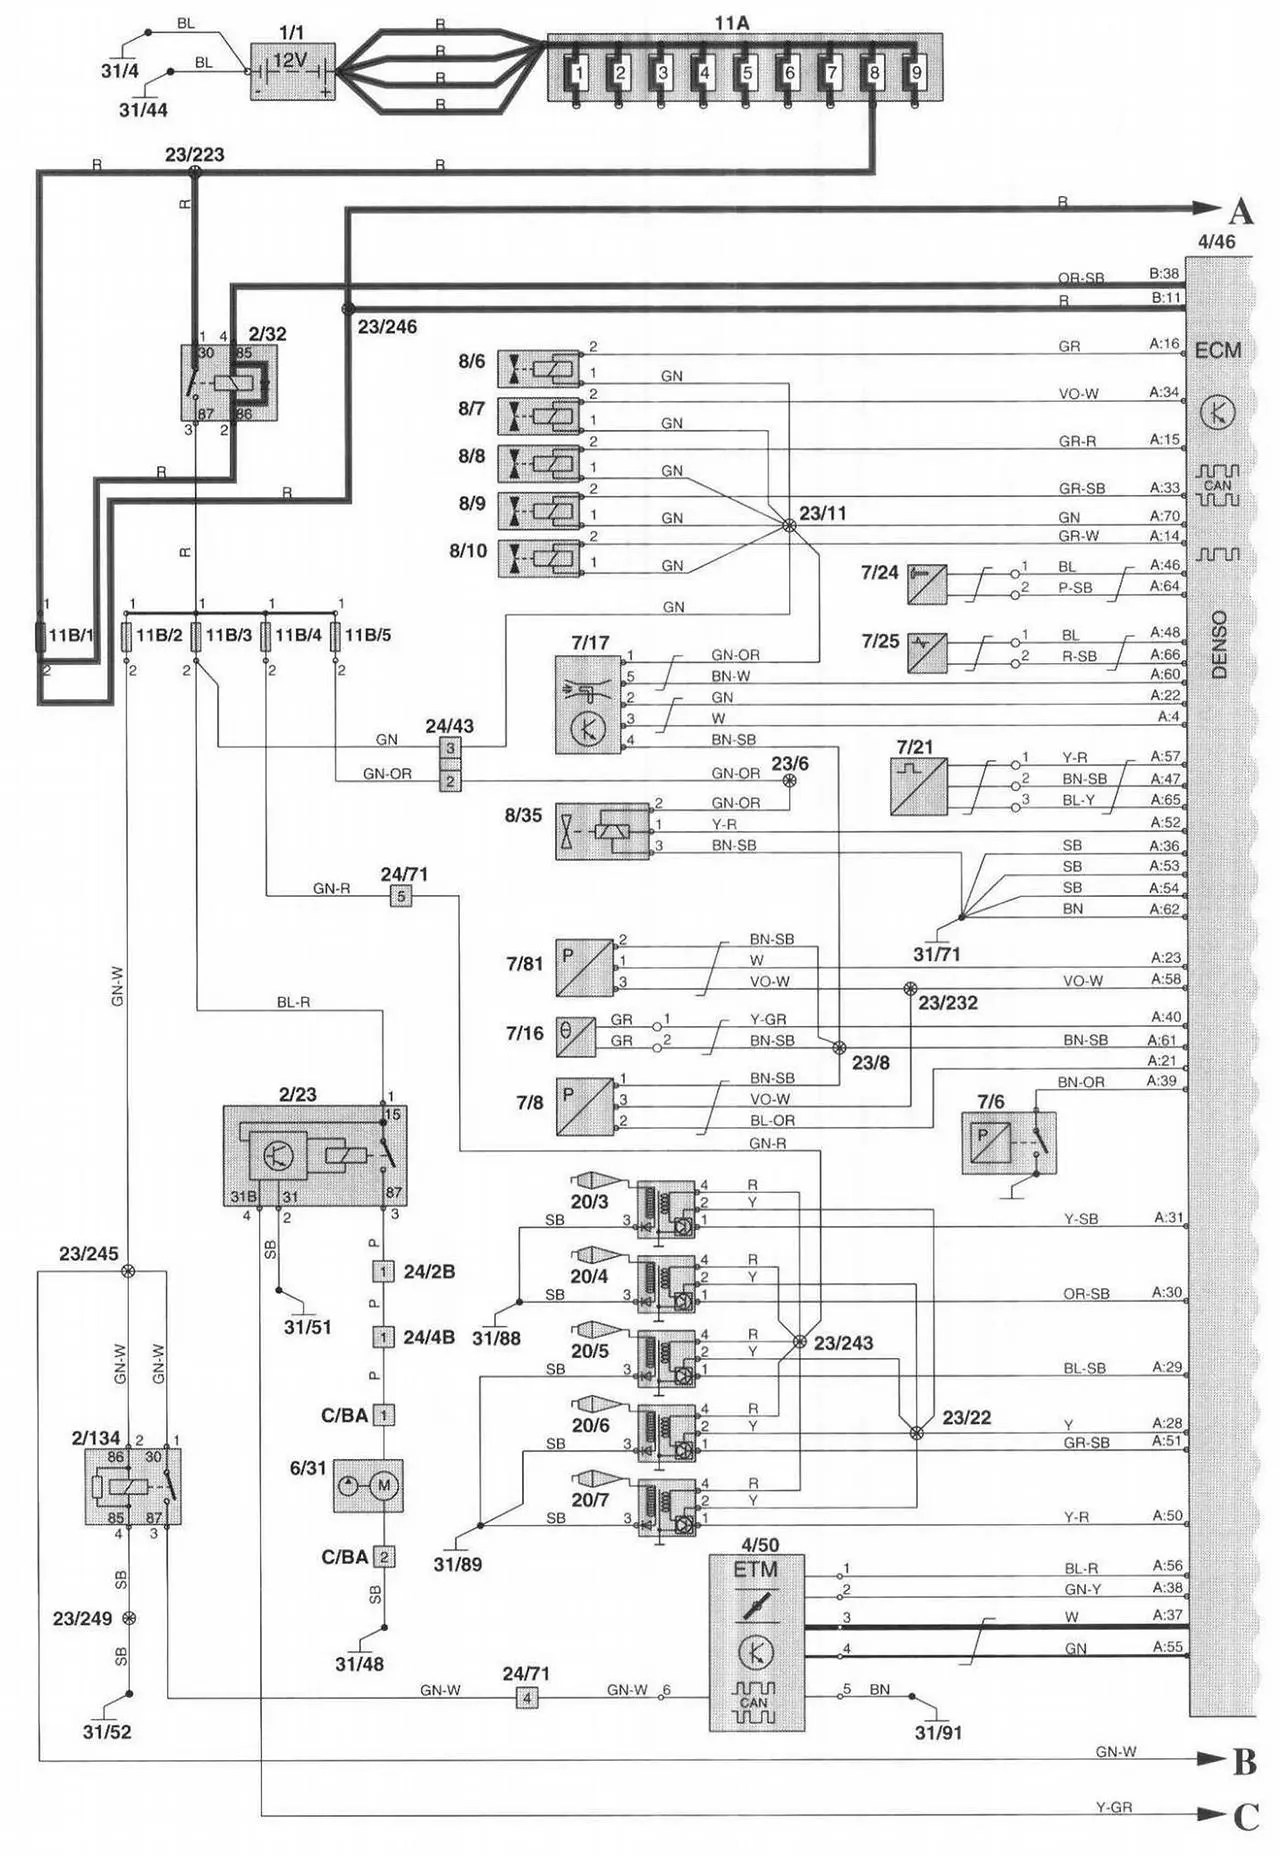 hight resolution of wiring diagram volvo xc70 free wiring diagram for you u2022 volvo s80 wiring diagram 2000 volvo wiring diagram